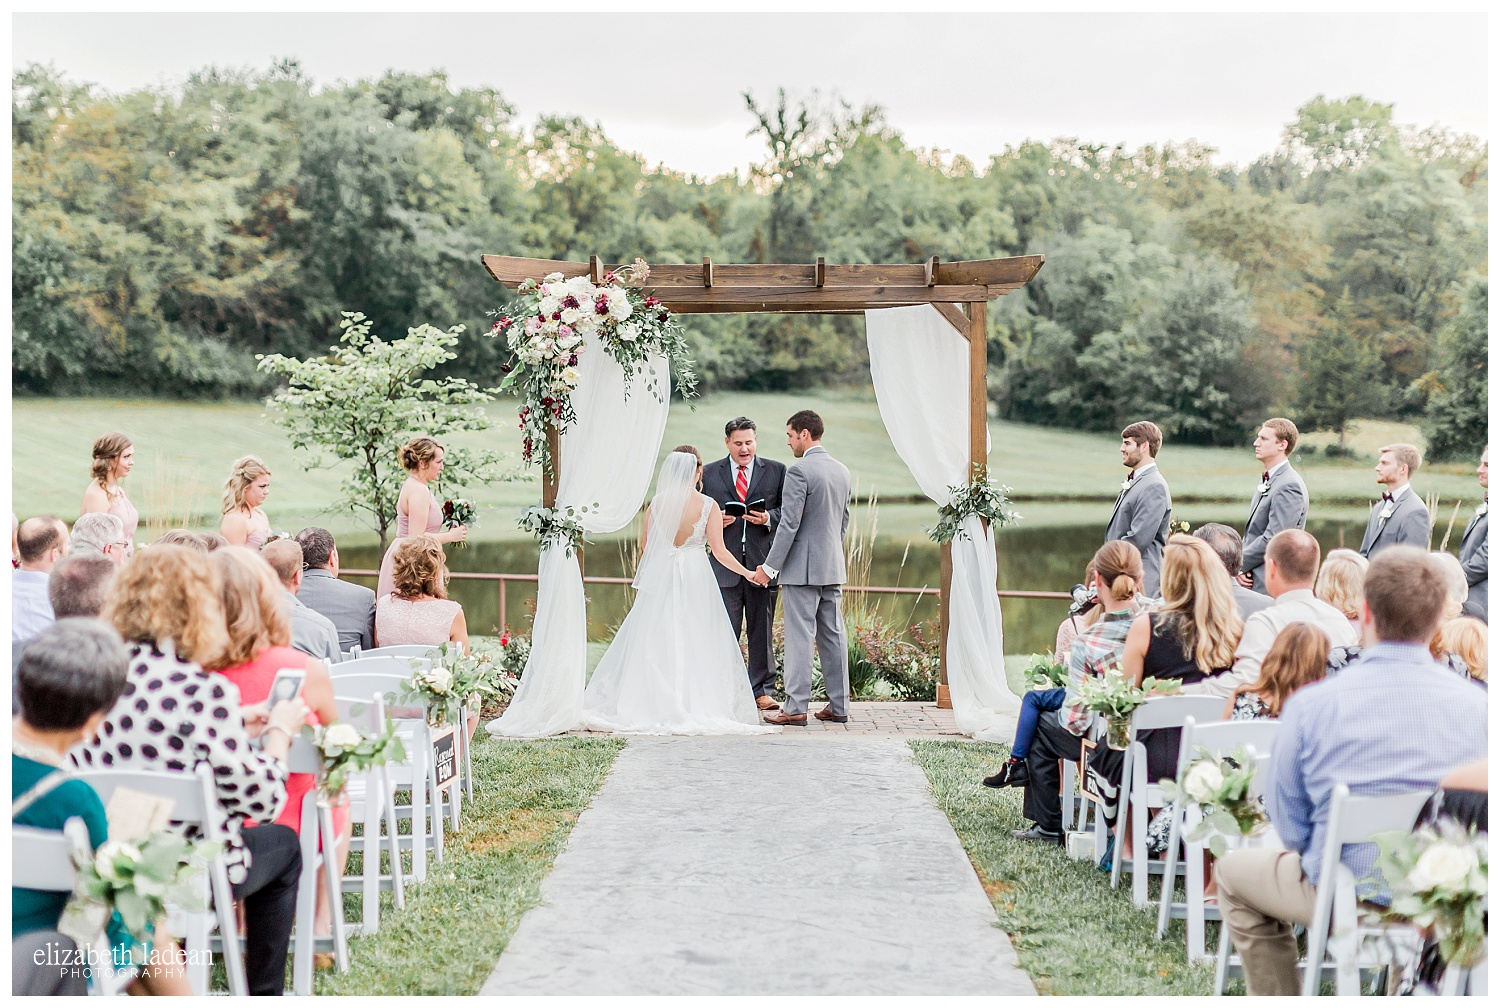 bride and groom getting married at Faulkner's Ranch in Kansas City